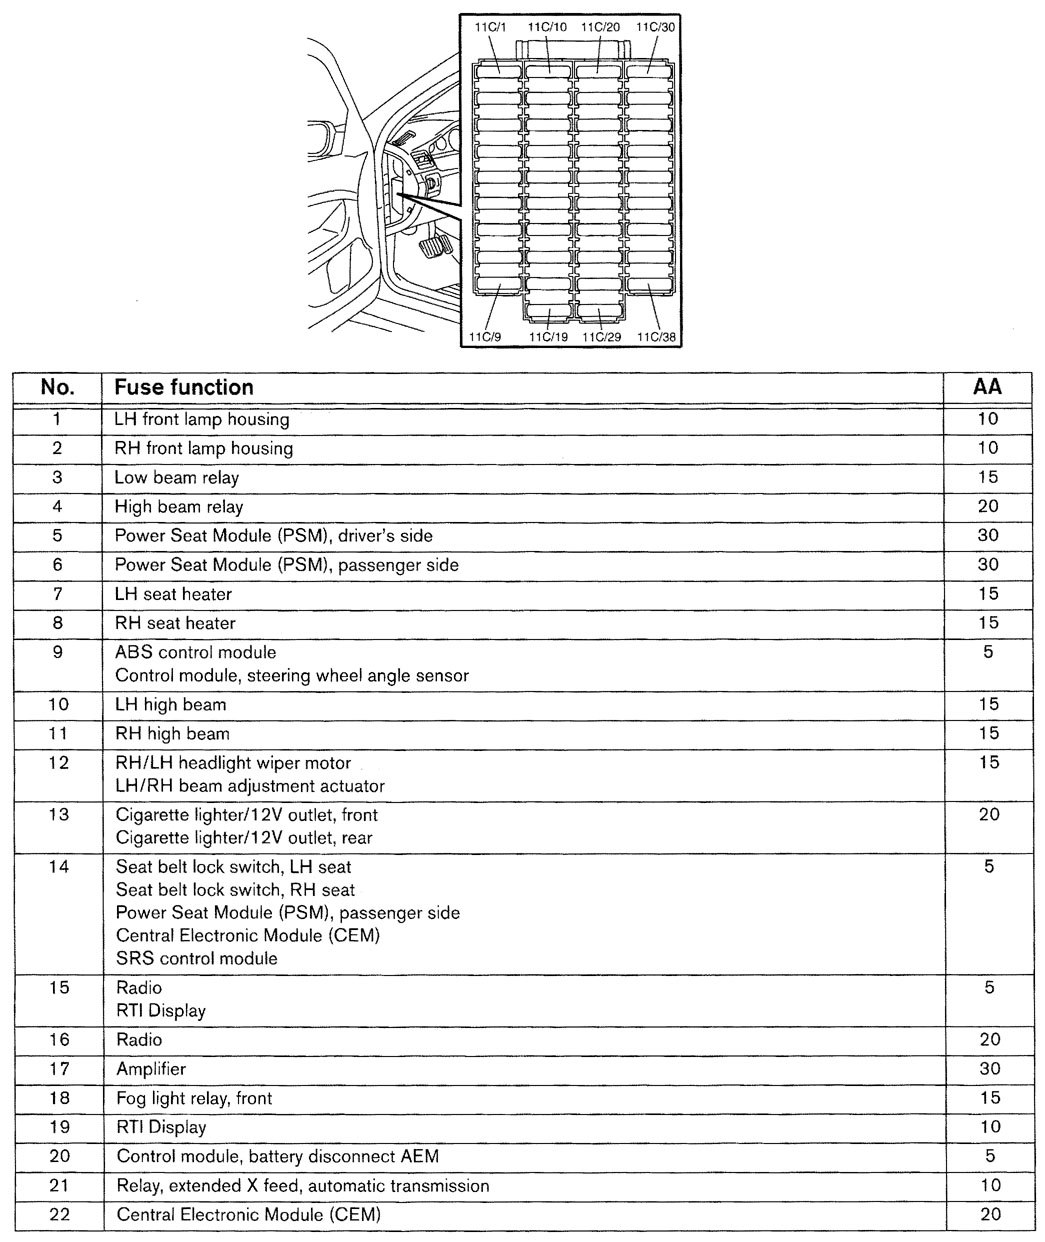 Volvo V70 (2001) Wiring Diagrams Fuse Panel Carknowledge Fuse Box On 2001  Volvo Xc70